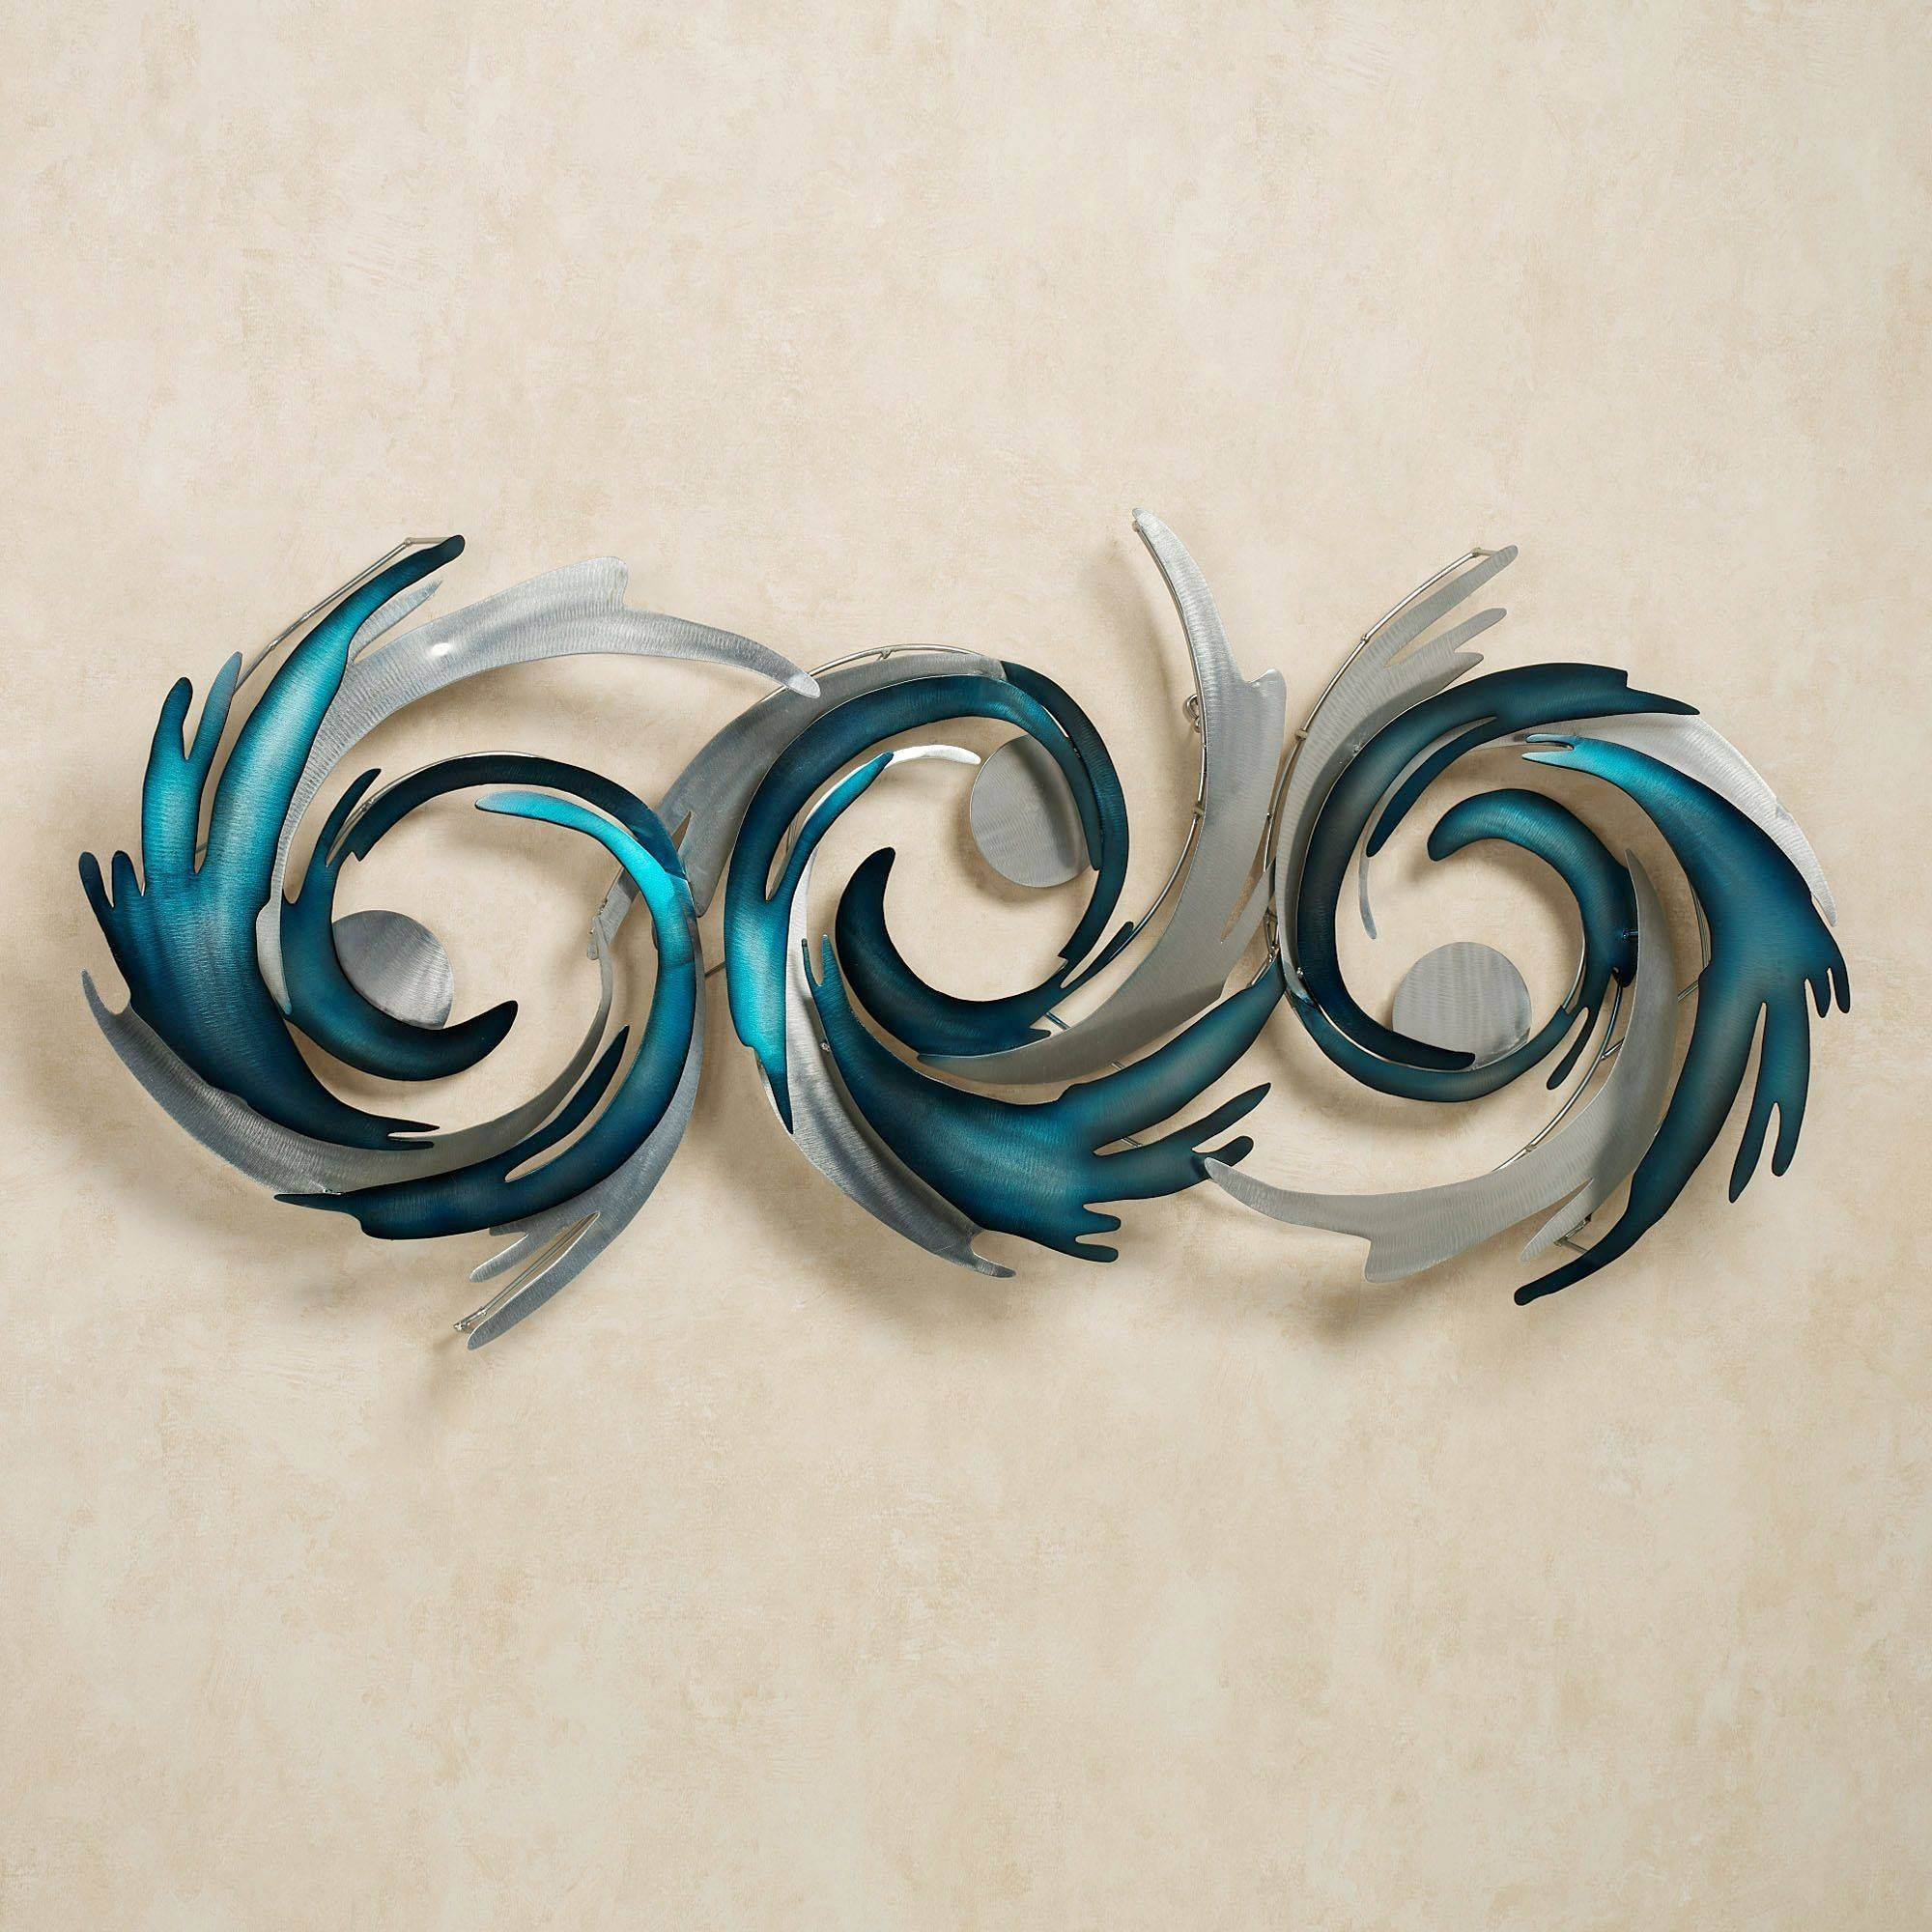 Perfect Storm Metal Wall Sculpturejasonw Studios Intended For Latest Touch Of Class Metal Wall Art (Gallery 10 of 20)